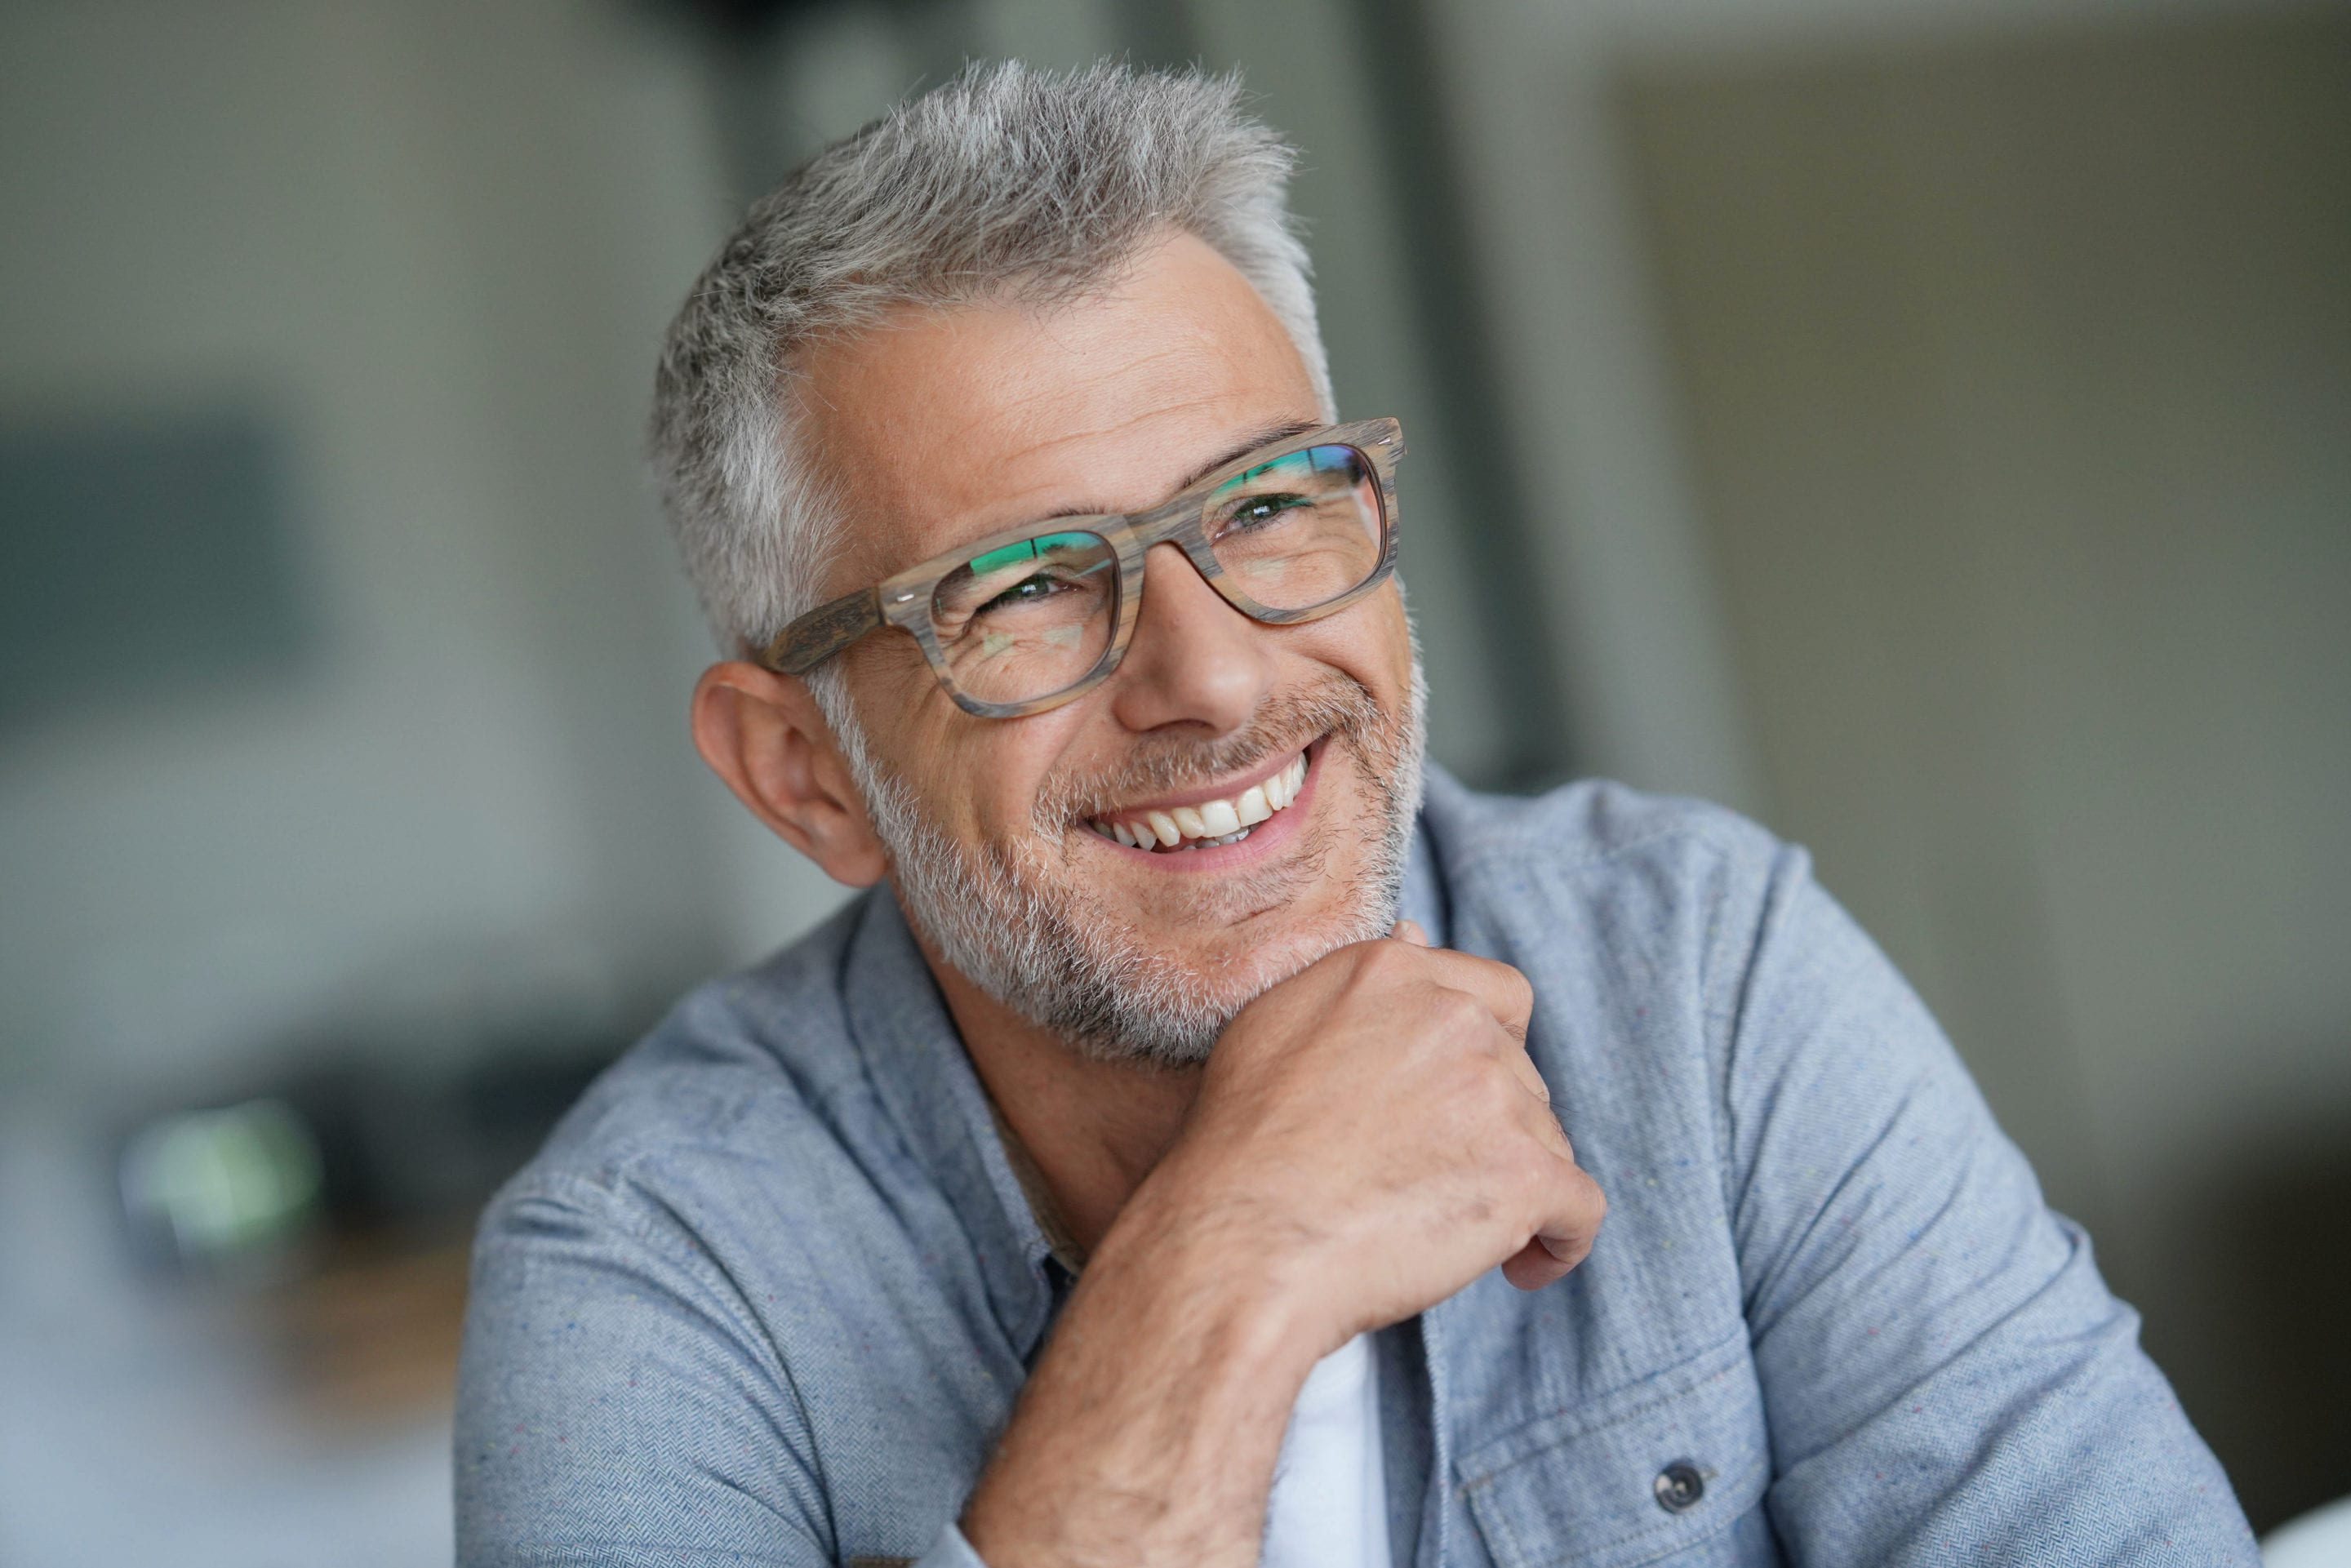 Middle-aged guy with trendy eyeglasses | Beltone Hearing Aid